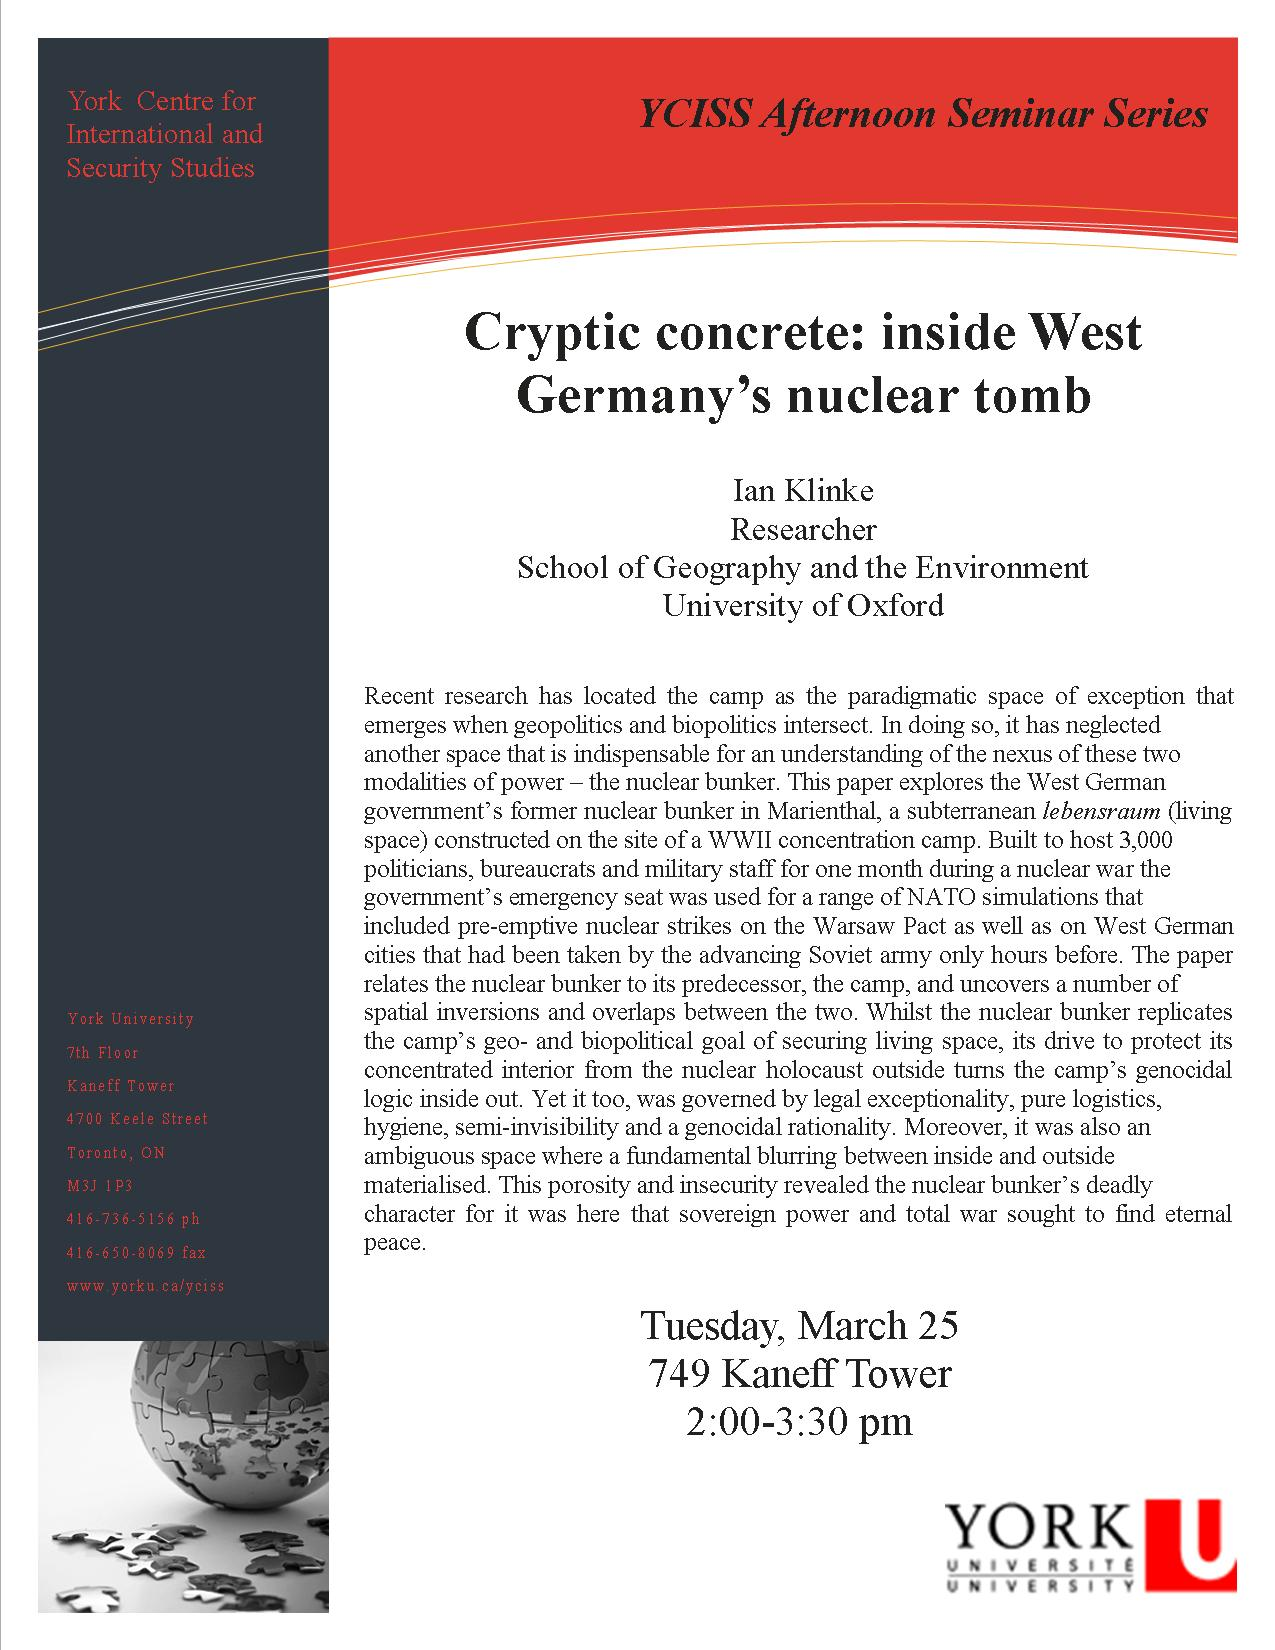 Cryptic concrete: inside West  Germany's nuclear tomb  @ 749 Kaneff Tower